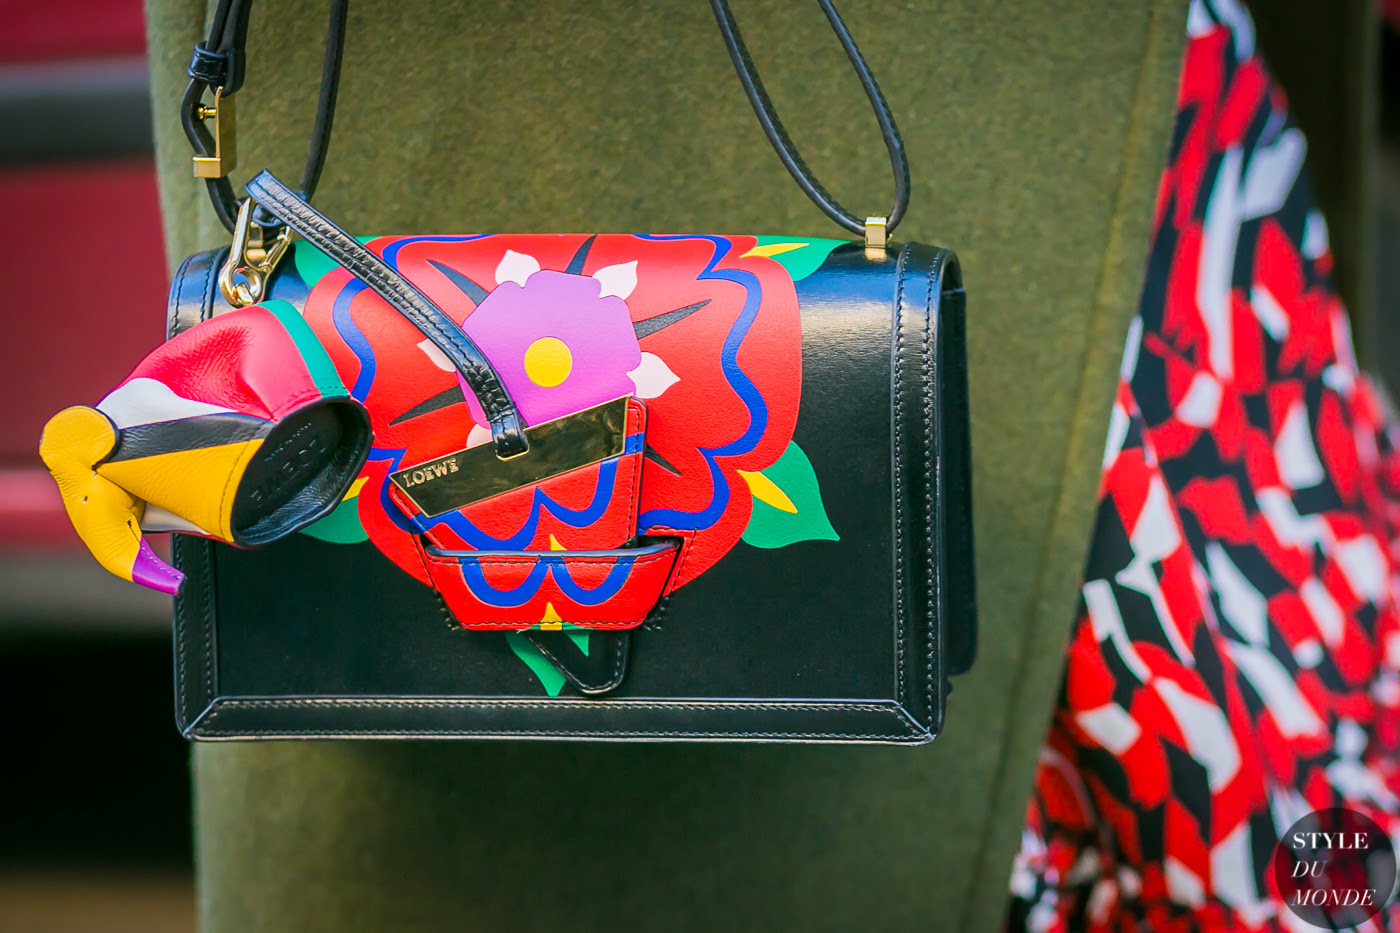 http://www.styledumonde.com/wp-content/uploads/2017/01/Sherry-Shen-Loewe-Bag-by-STYLEDUMONDE-Street-Style-Fashion-Photography0E2A3857-700x467@2x.jpg